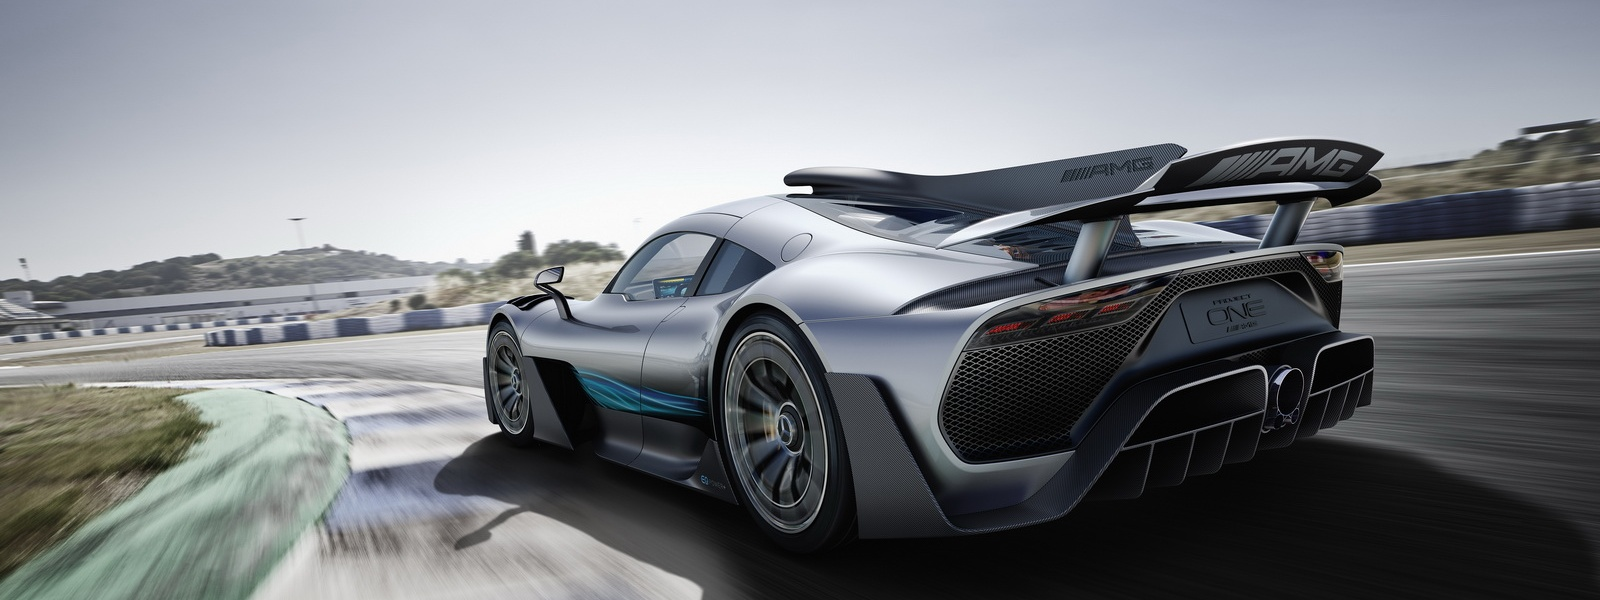 mercedes-amg-project-one-7.jpg